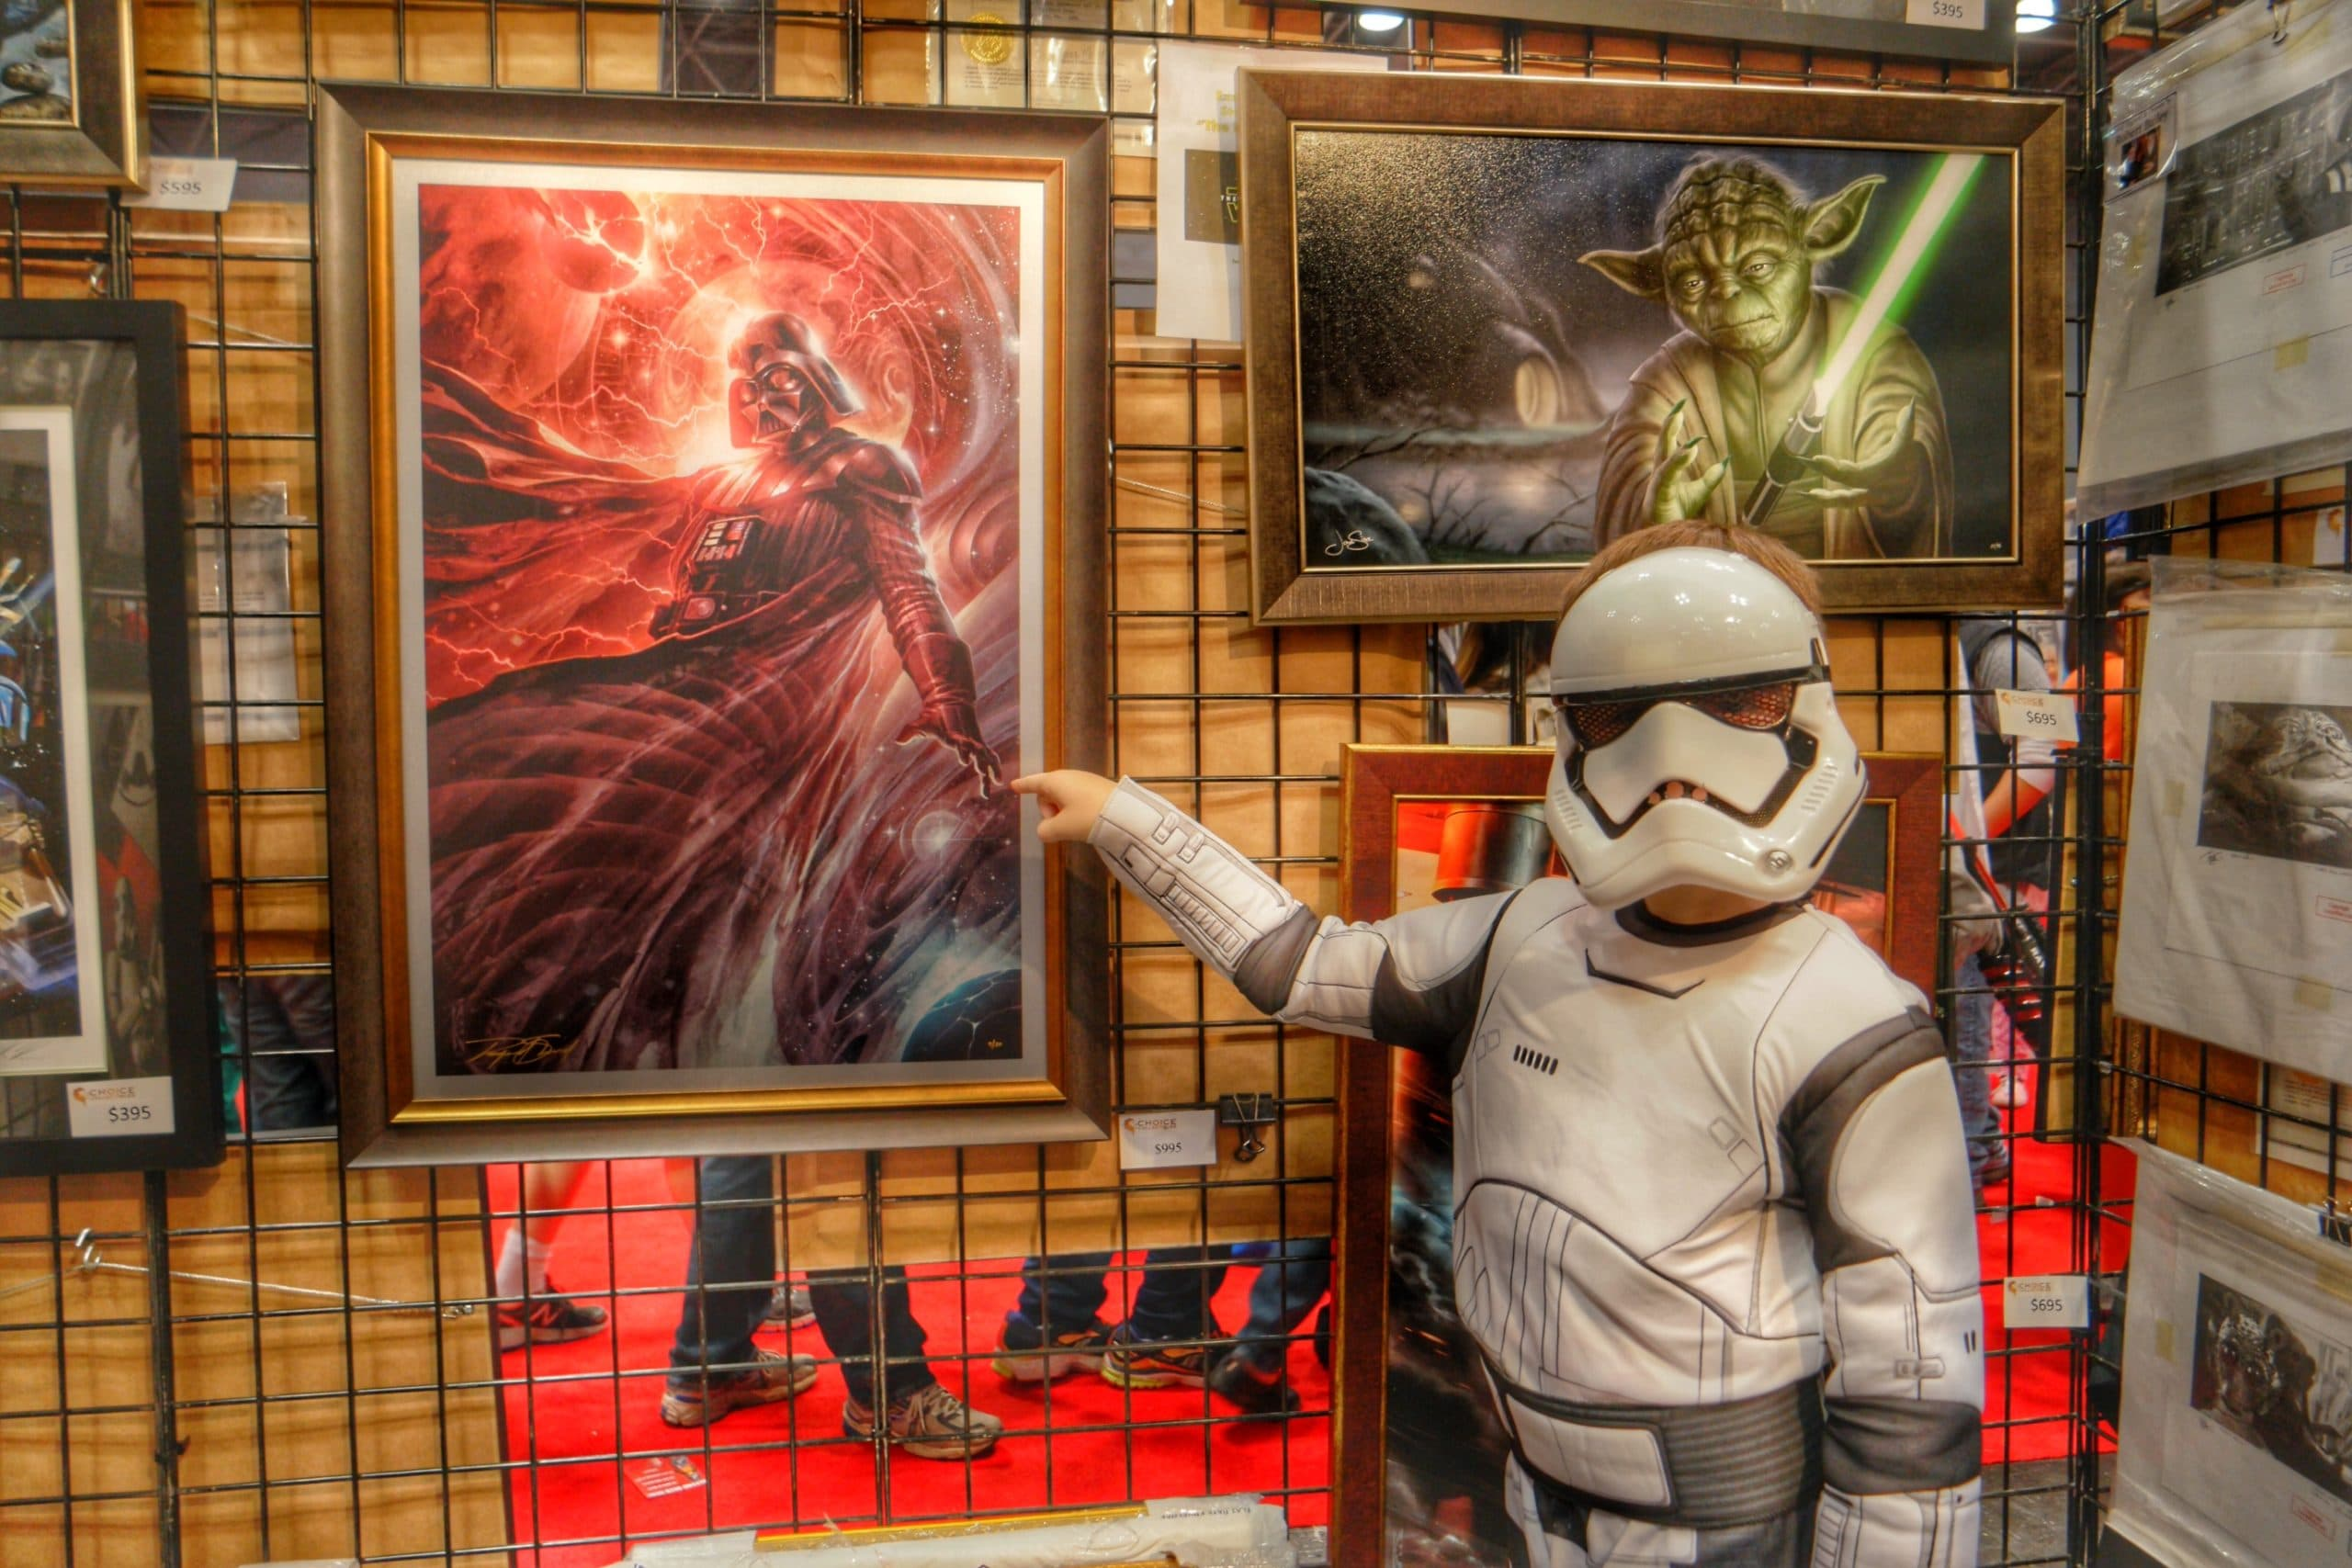 New York Comic Con 2015 and finding real art at Choice Collectables